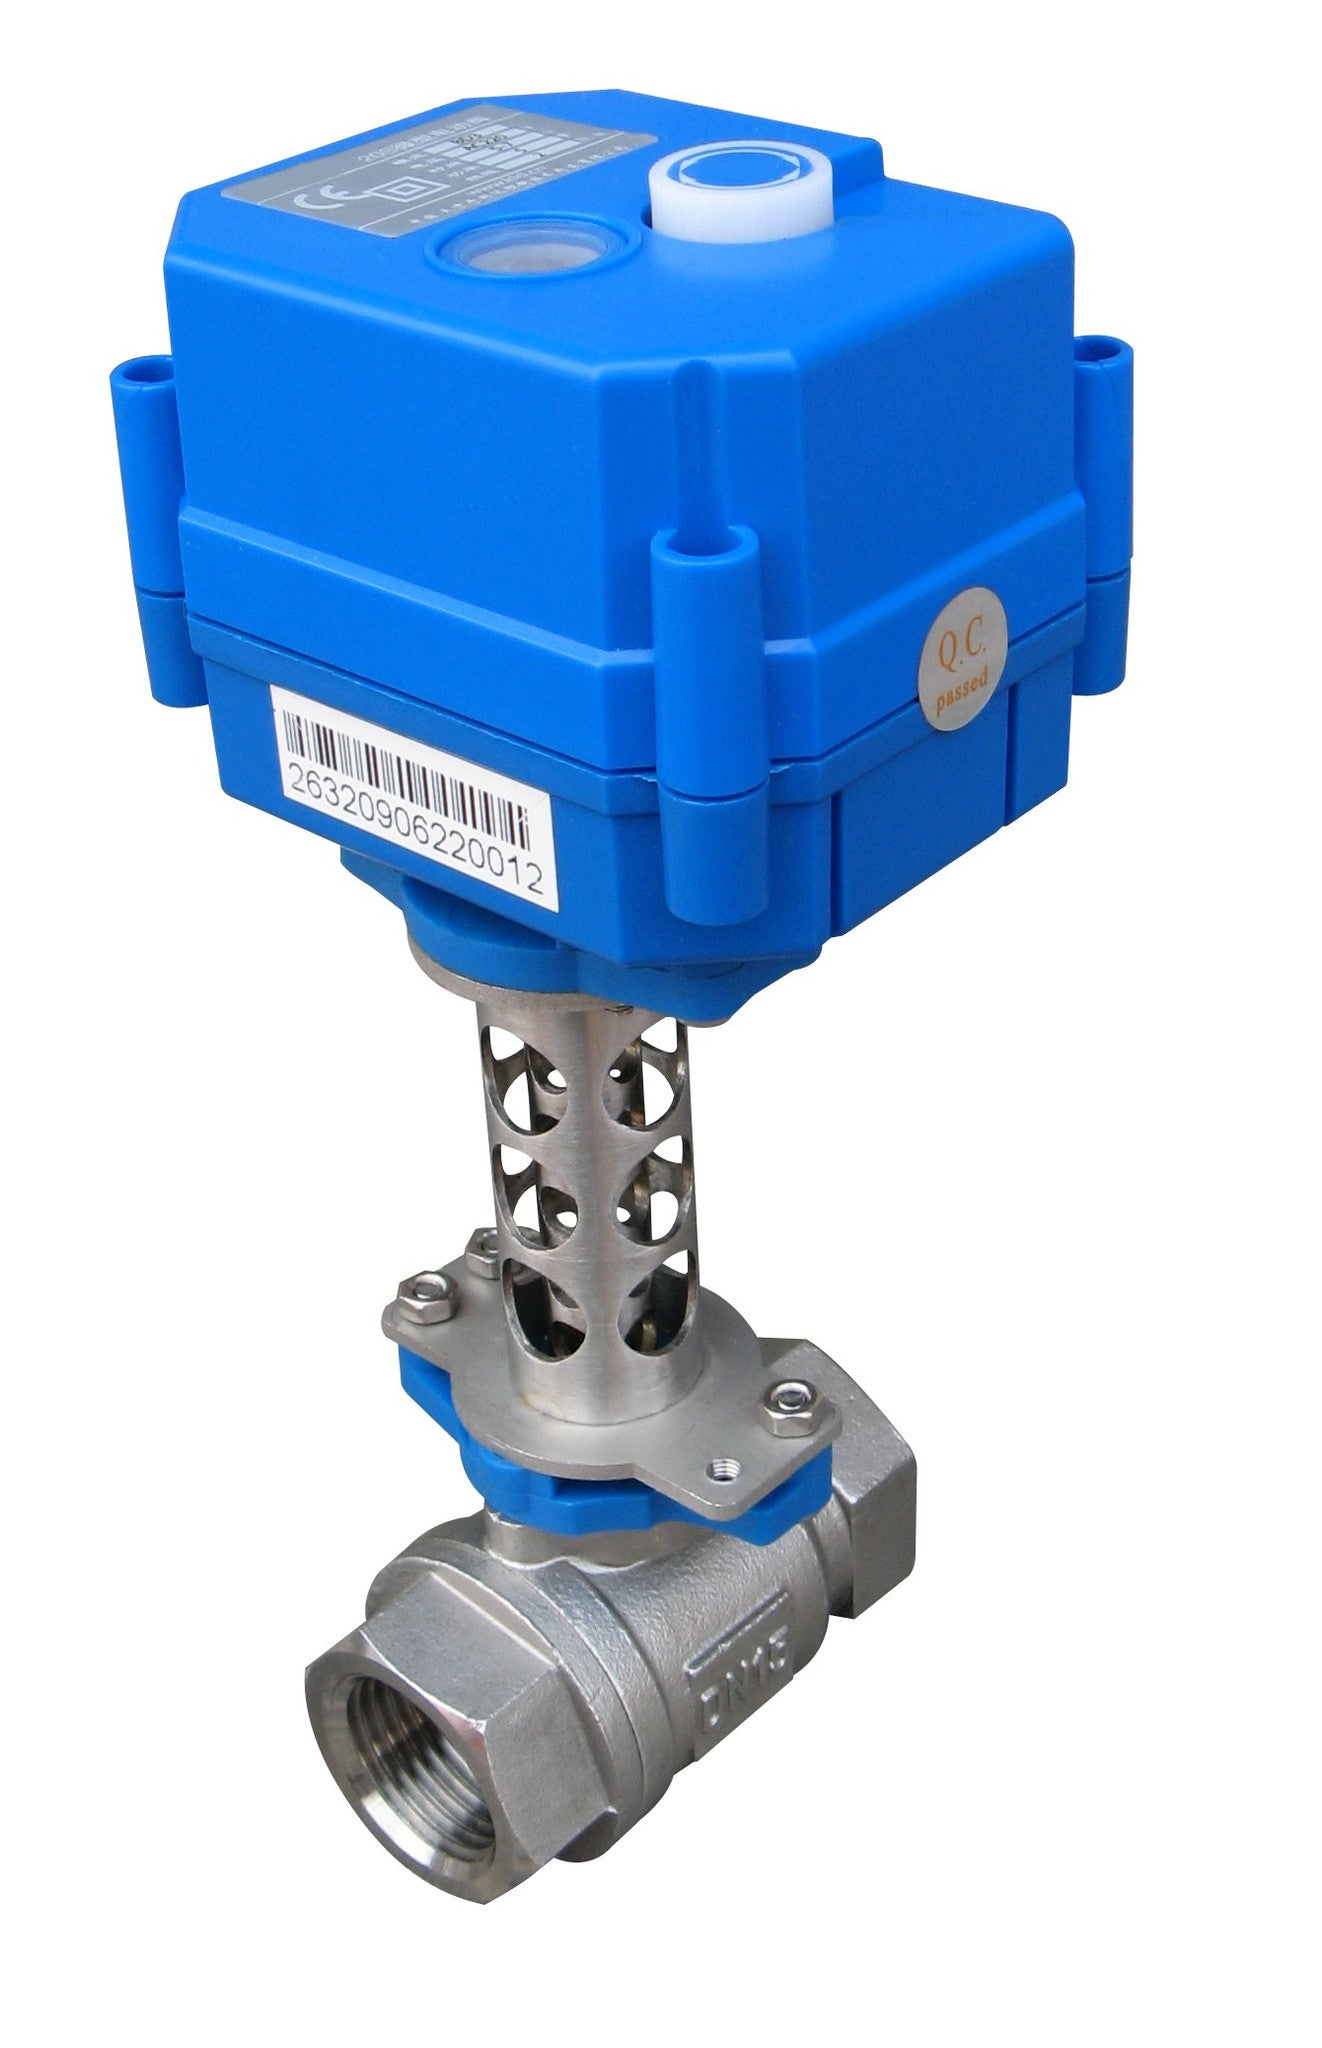 Electric motorized ball water control valve YS20SHT High Temperature, 3 wires actuator 95-250 VAC  #yamavalve - Yamatho Supply